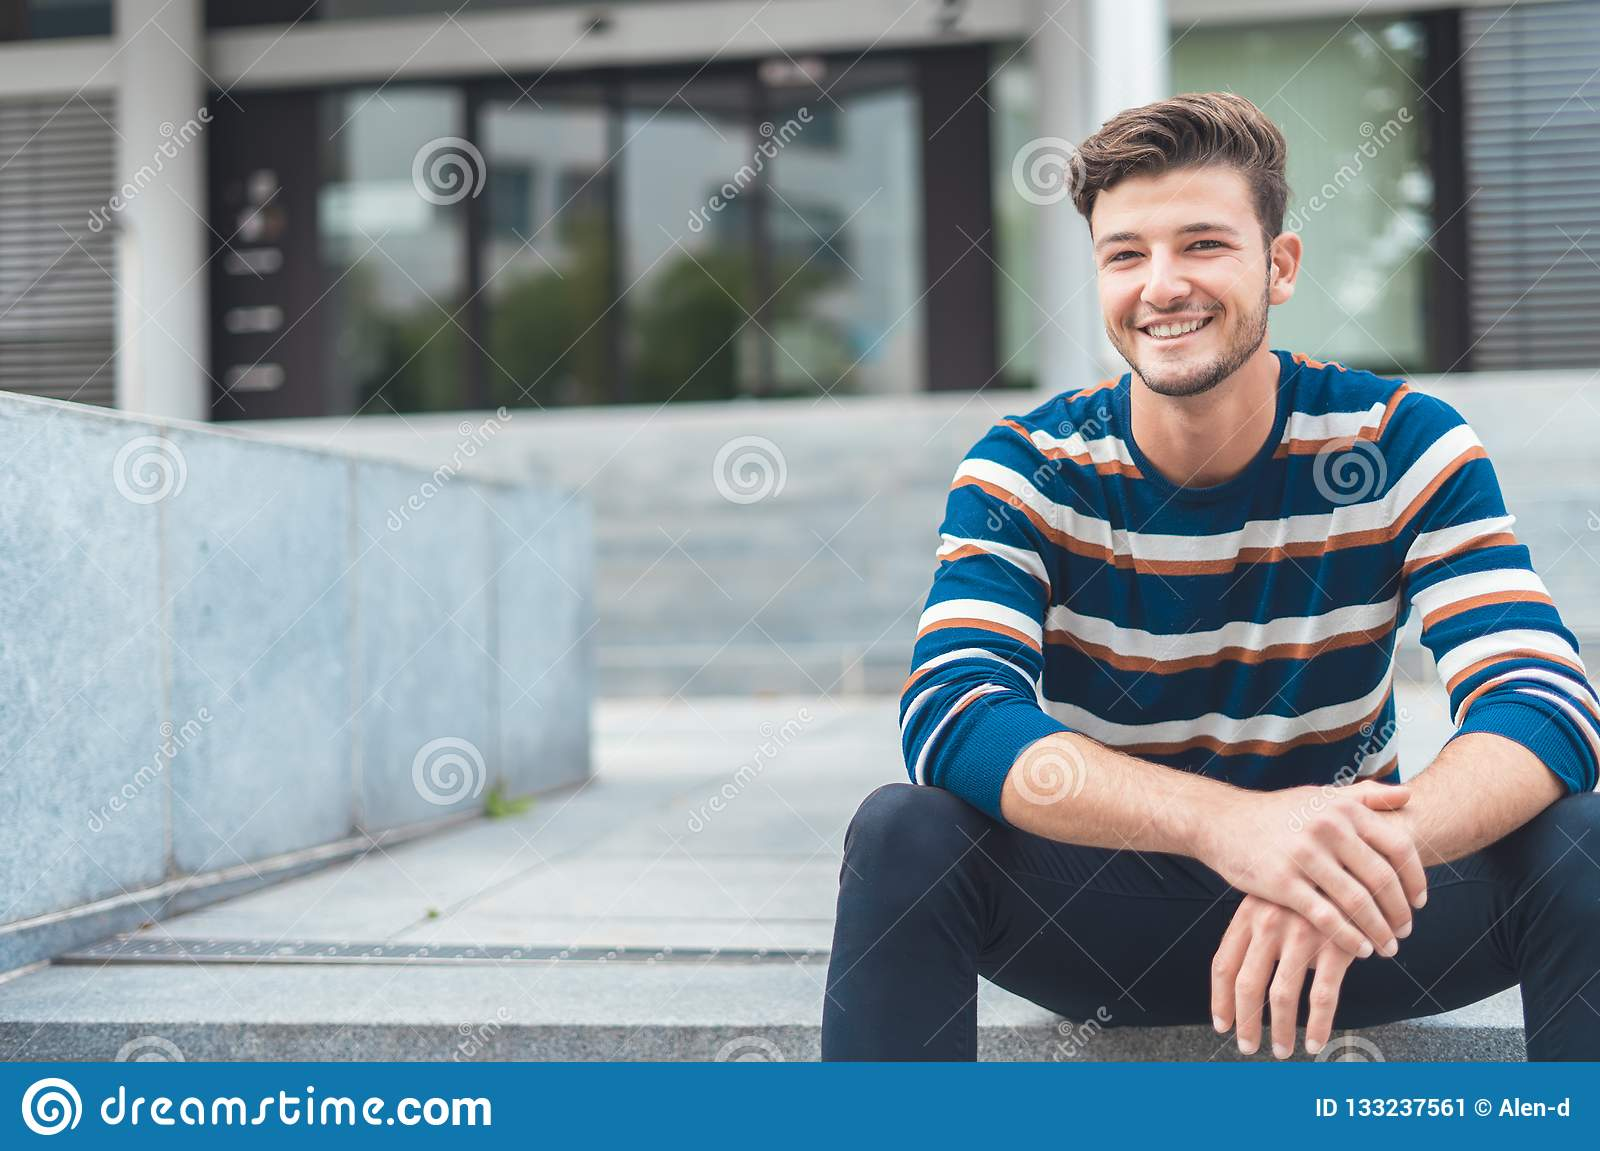 Happy young man sitting in front of entry entrance